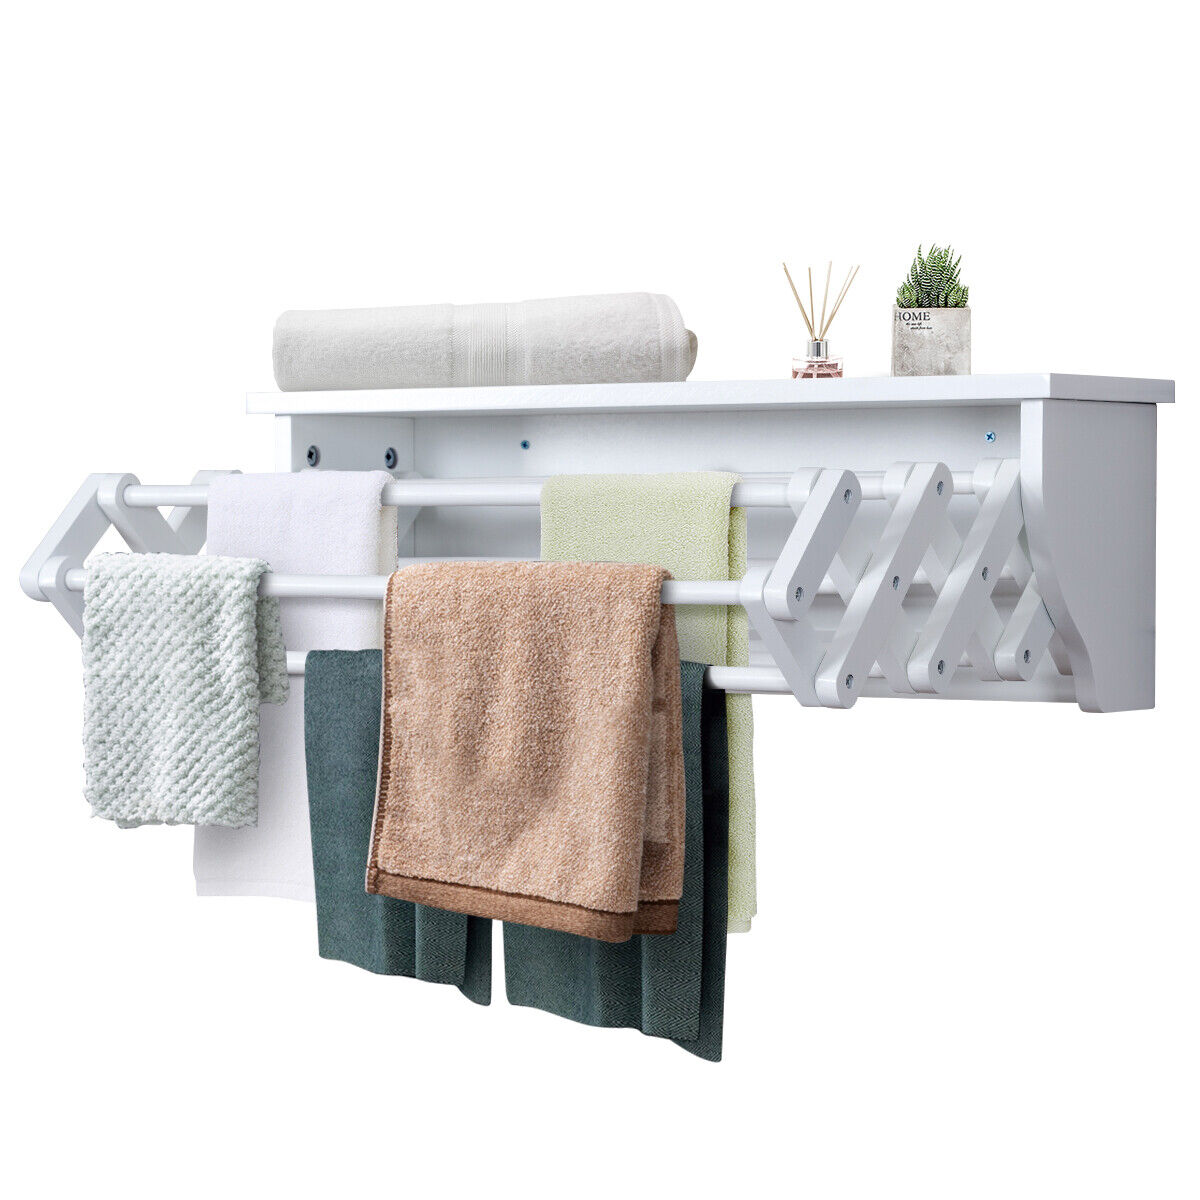 Wall Mounted Drying Rack Folding Clothes Towel Laundry Room Storage Shelf White